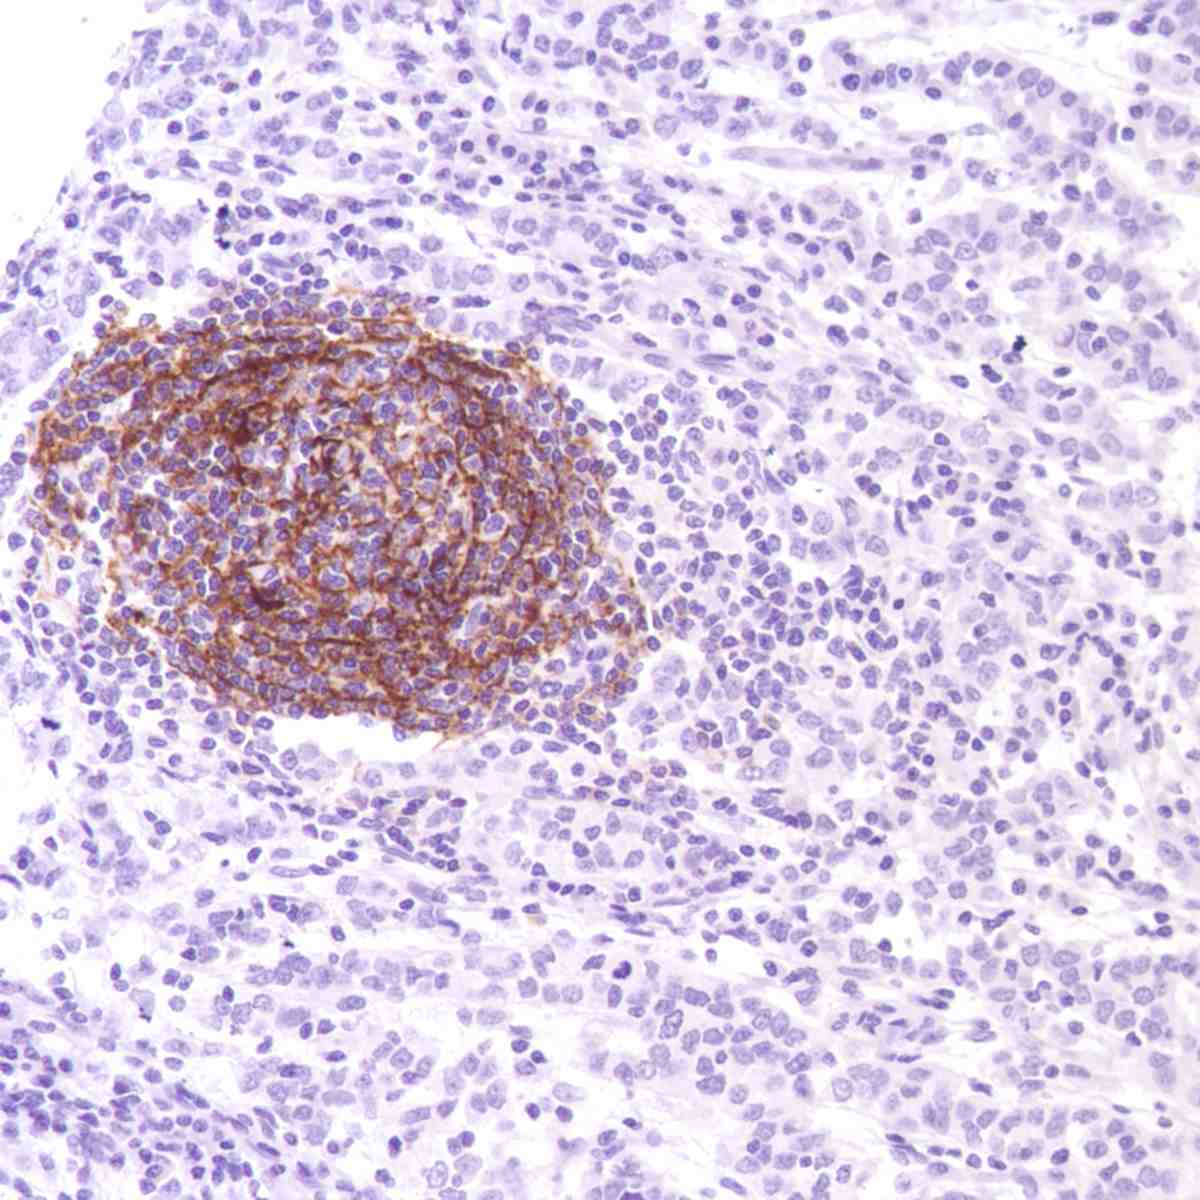 Human Stomach Adenocarcinoma stained with anti-CD35 antibody